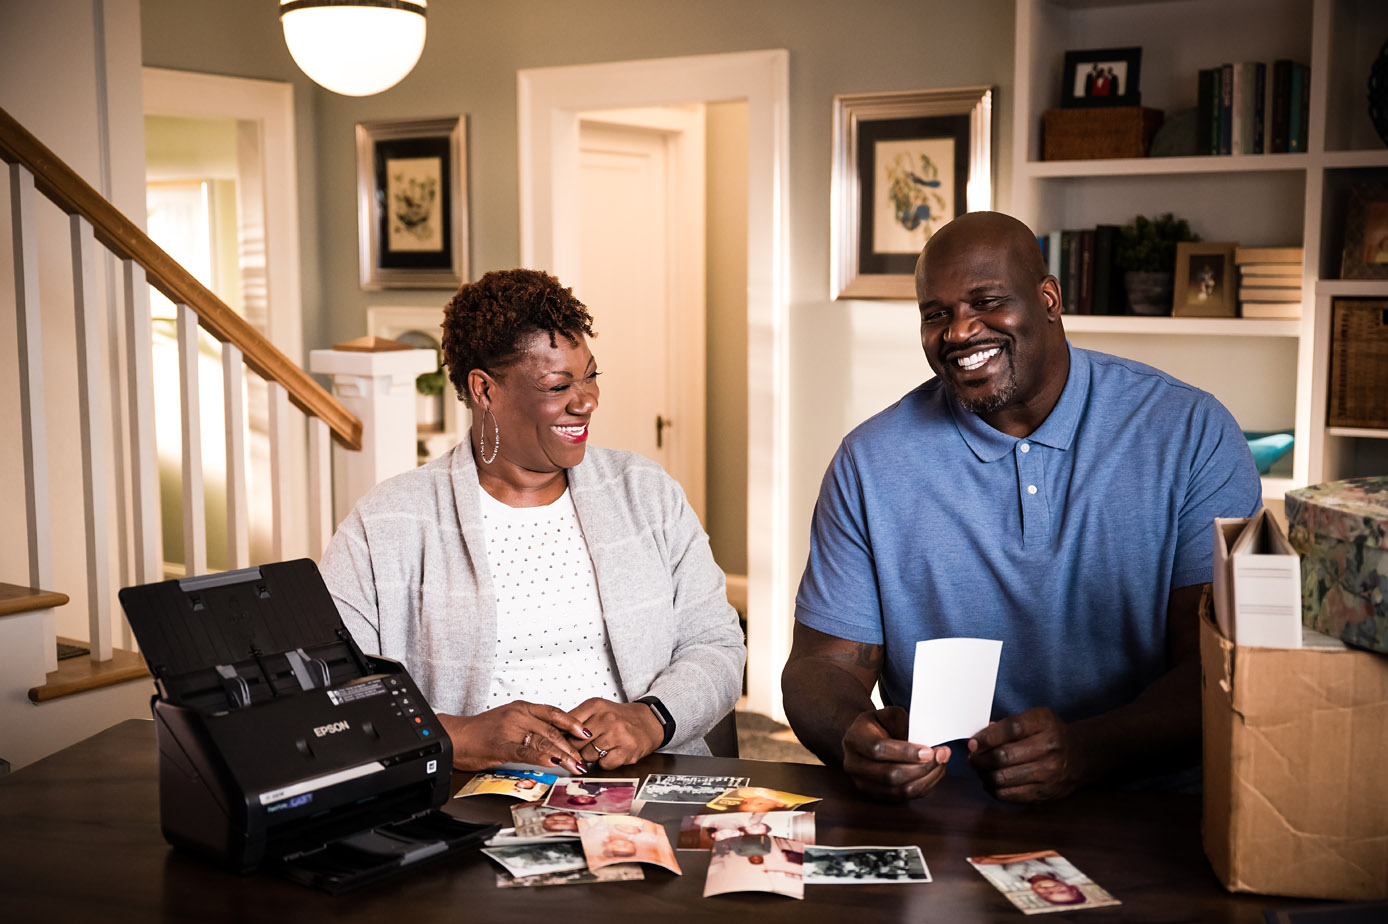 Lucille and Shaquille O'Neal relive childhood memories through their old photos